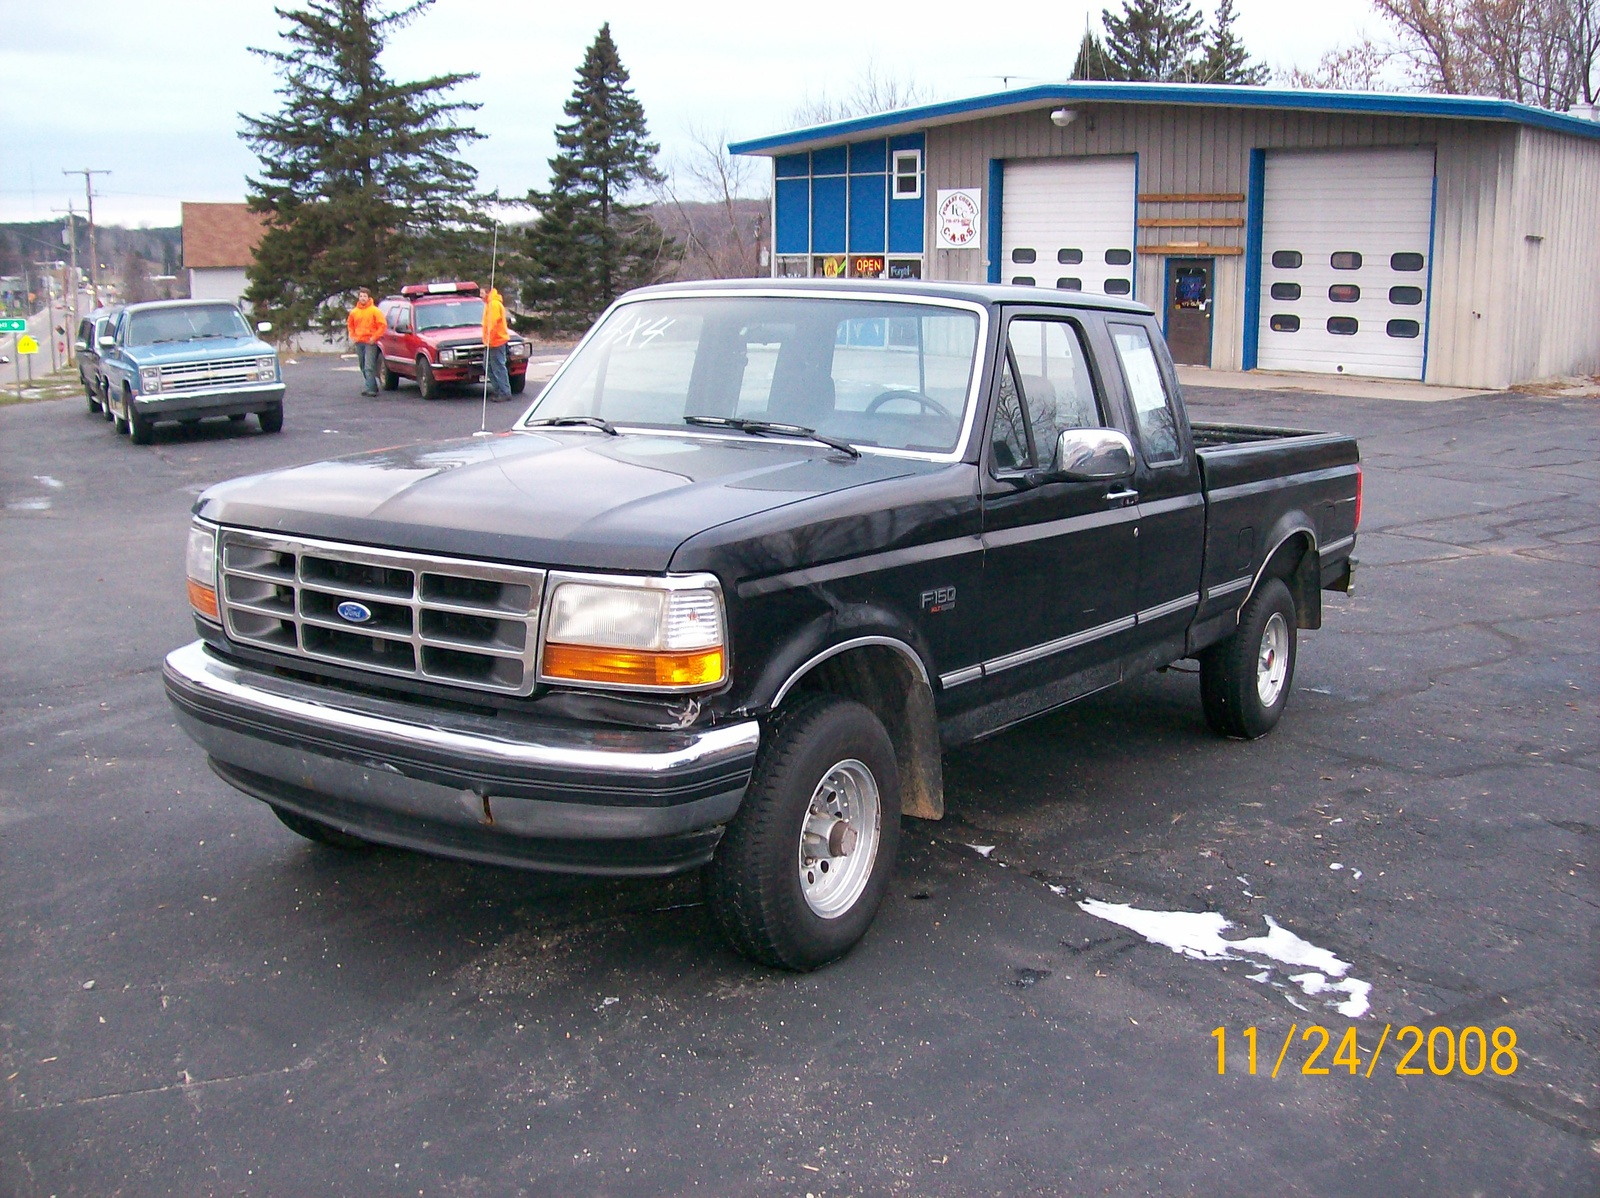 1992 ford f150 pictures Birds - English Vocabulary - LanguageGuide. org